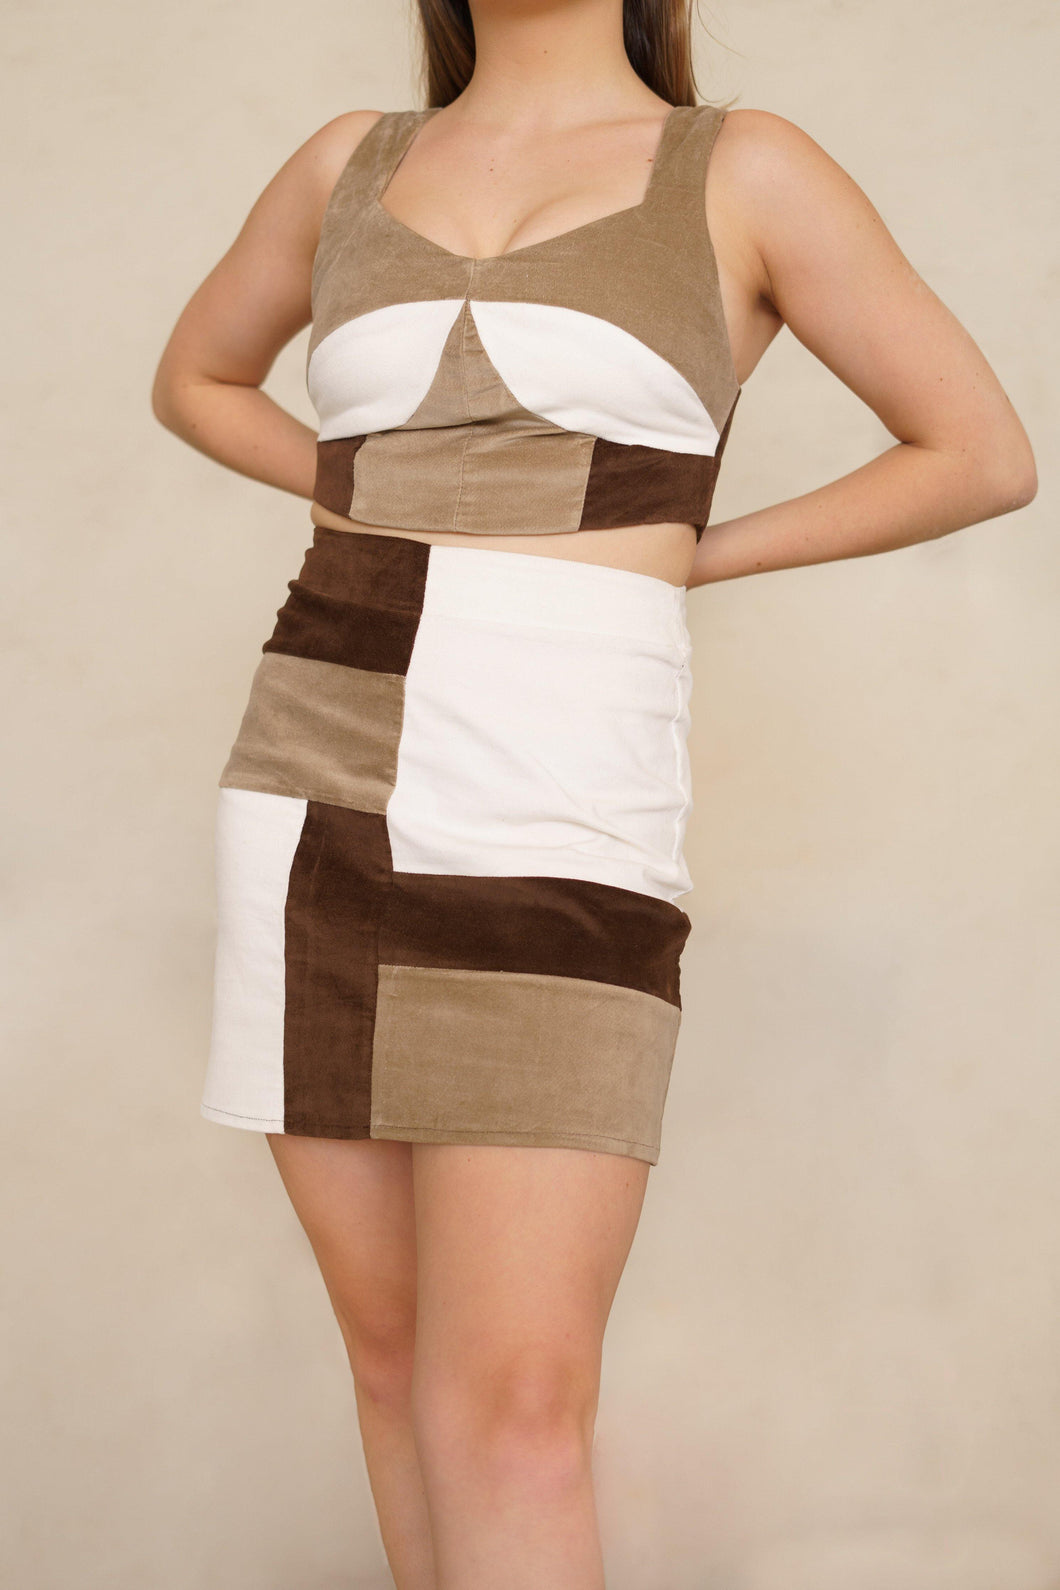 Patchwork vintage mini skirt in Brown, Beige and White with Matching Co-Ord Corset Top with Zip